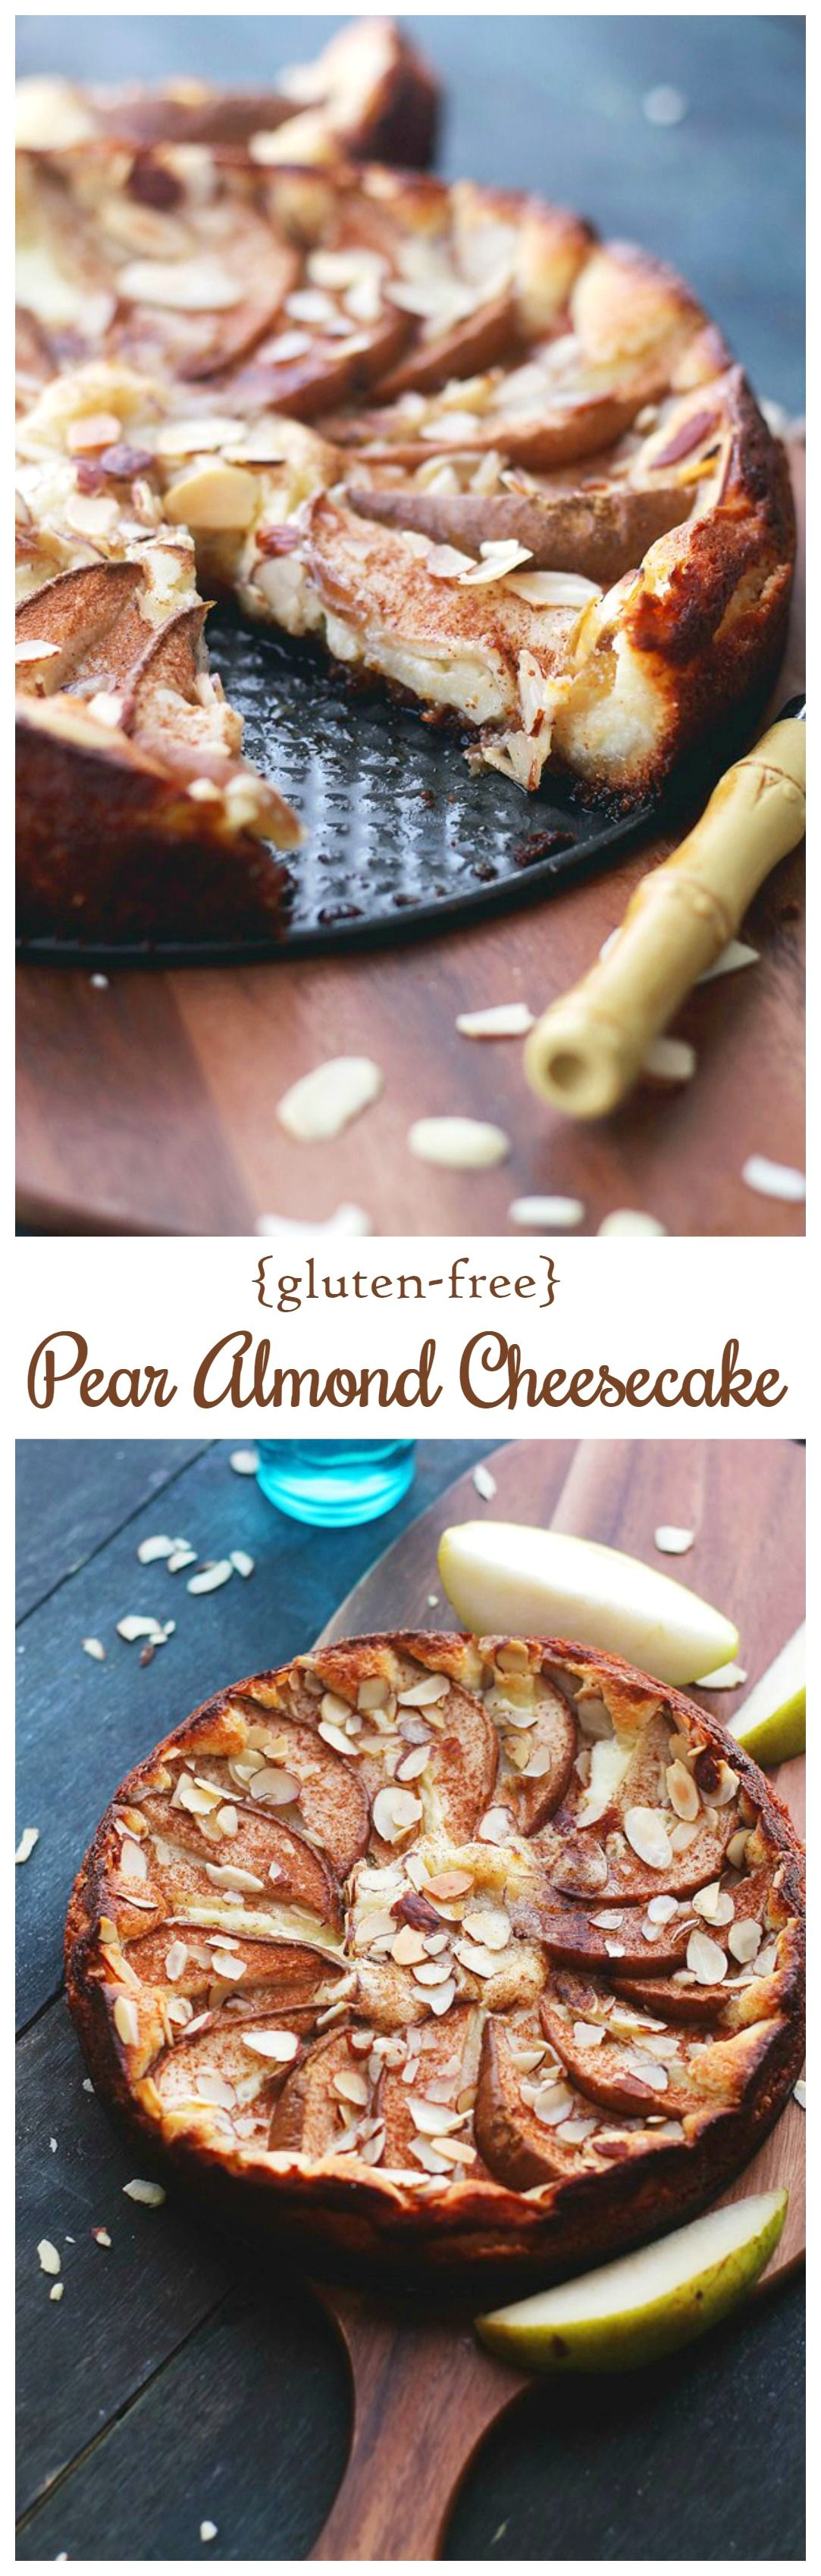 Sweet and silky Pear Almond Cheesecake Torte, prepared with a cream cheese mixture atop an almond-flour crust, and garnished with fresh pears.  Gluten Free Fall Dessert!